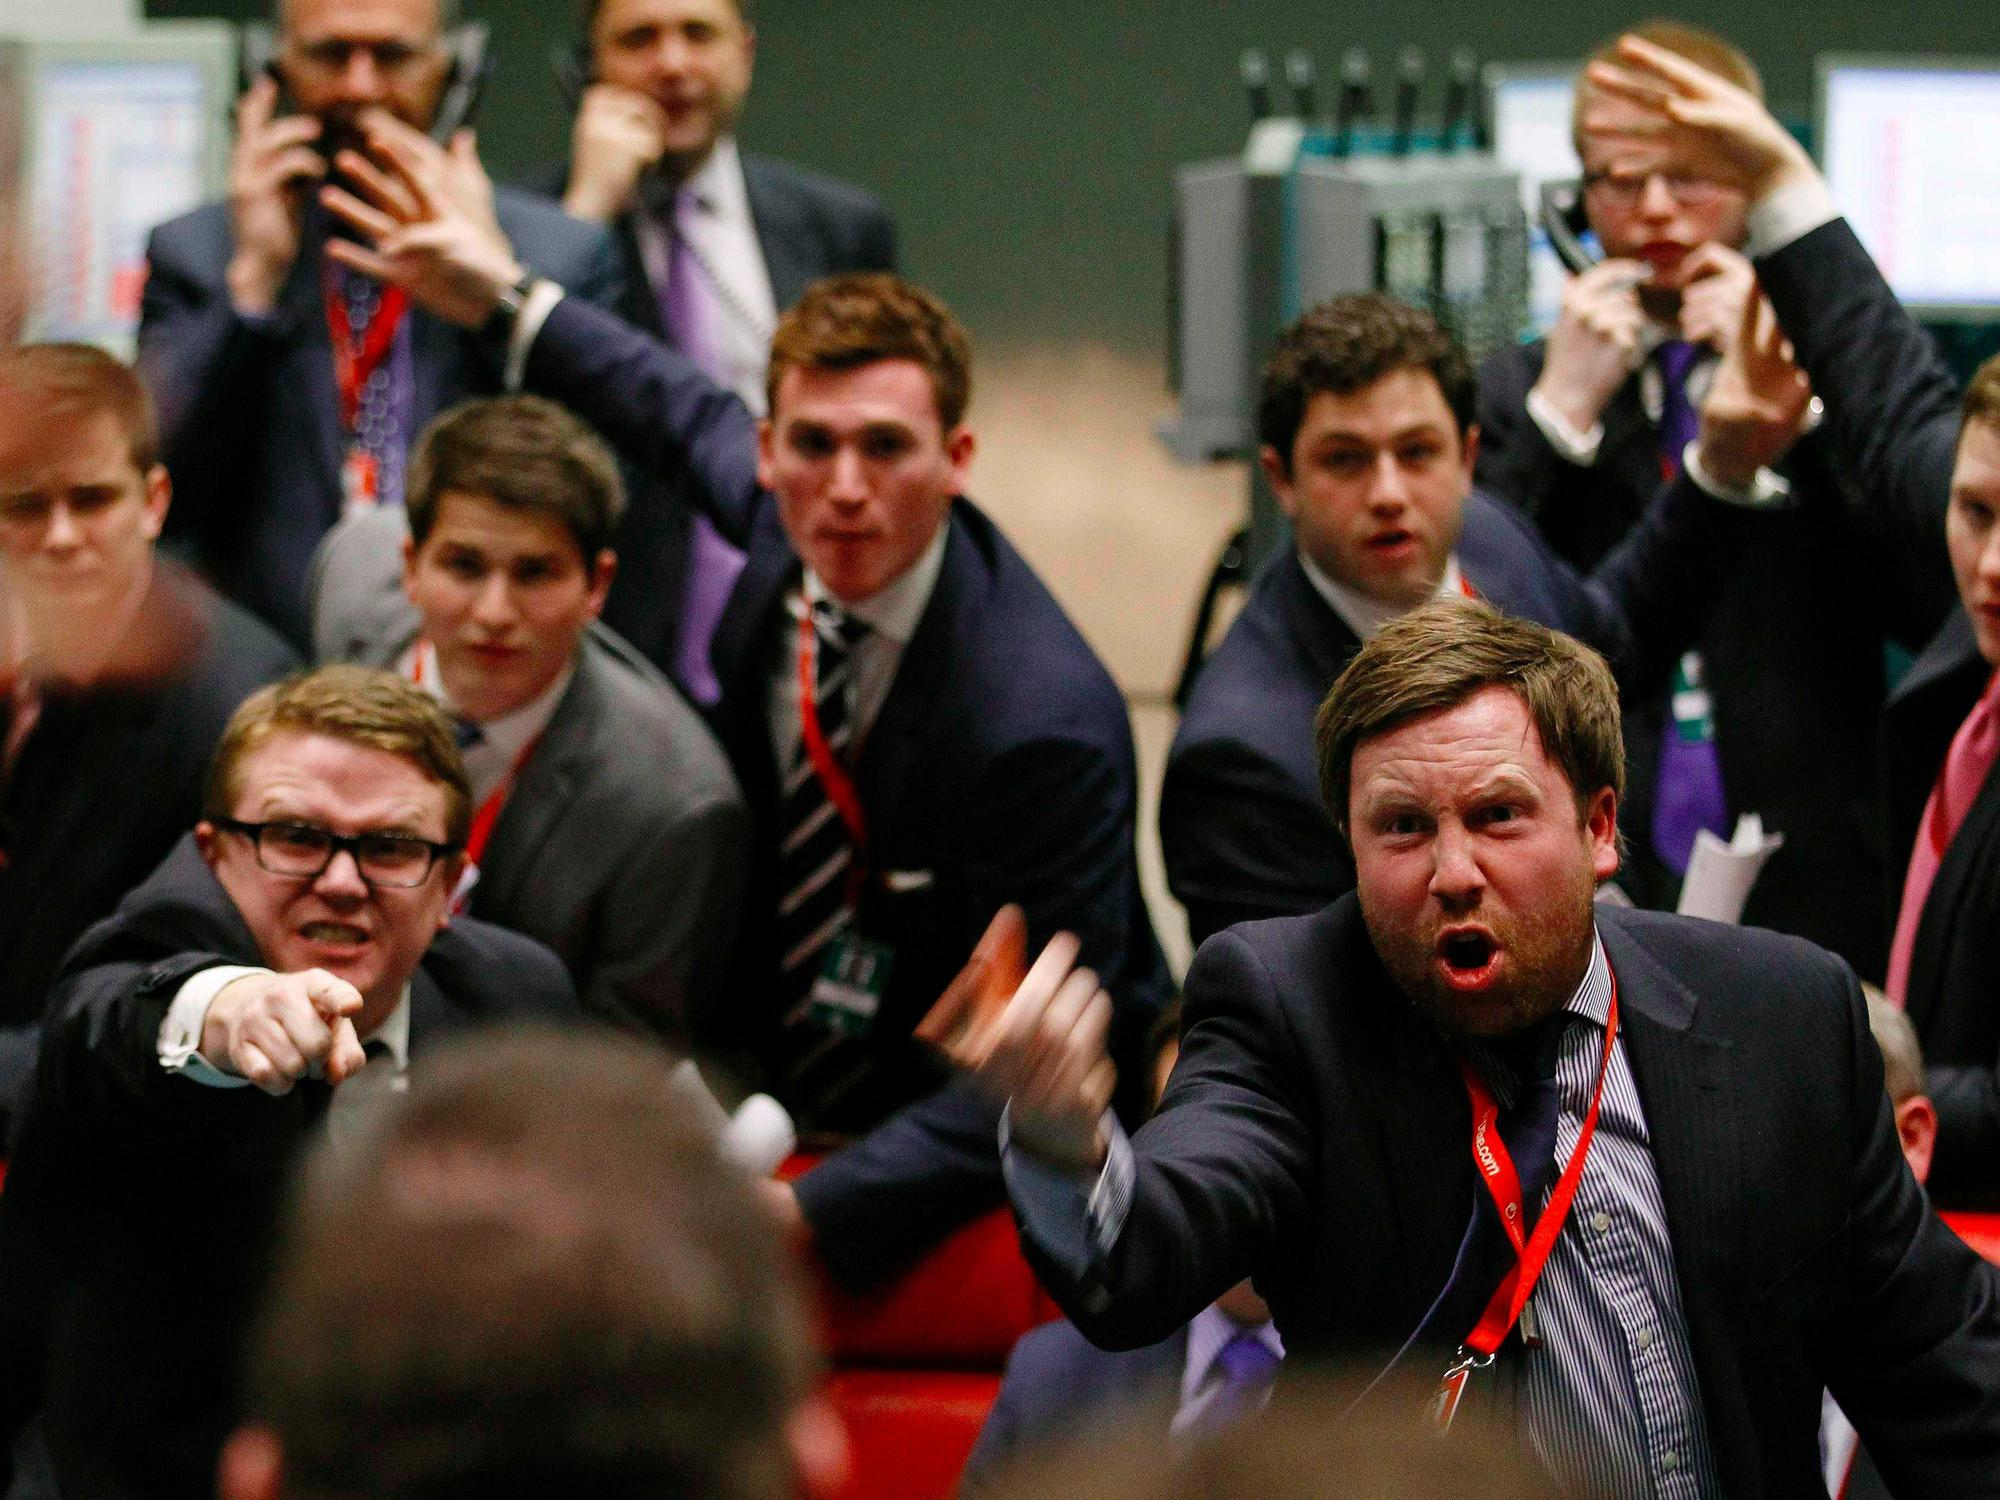 stock Traders and clerks react on the floor of the London Metal Exchange in the City of London February 14, 2012.